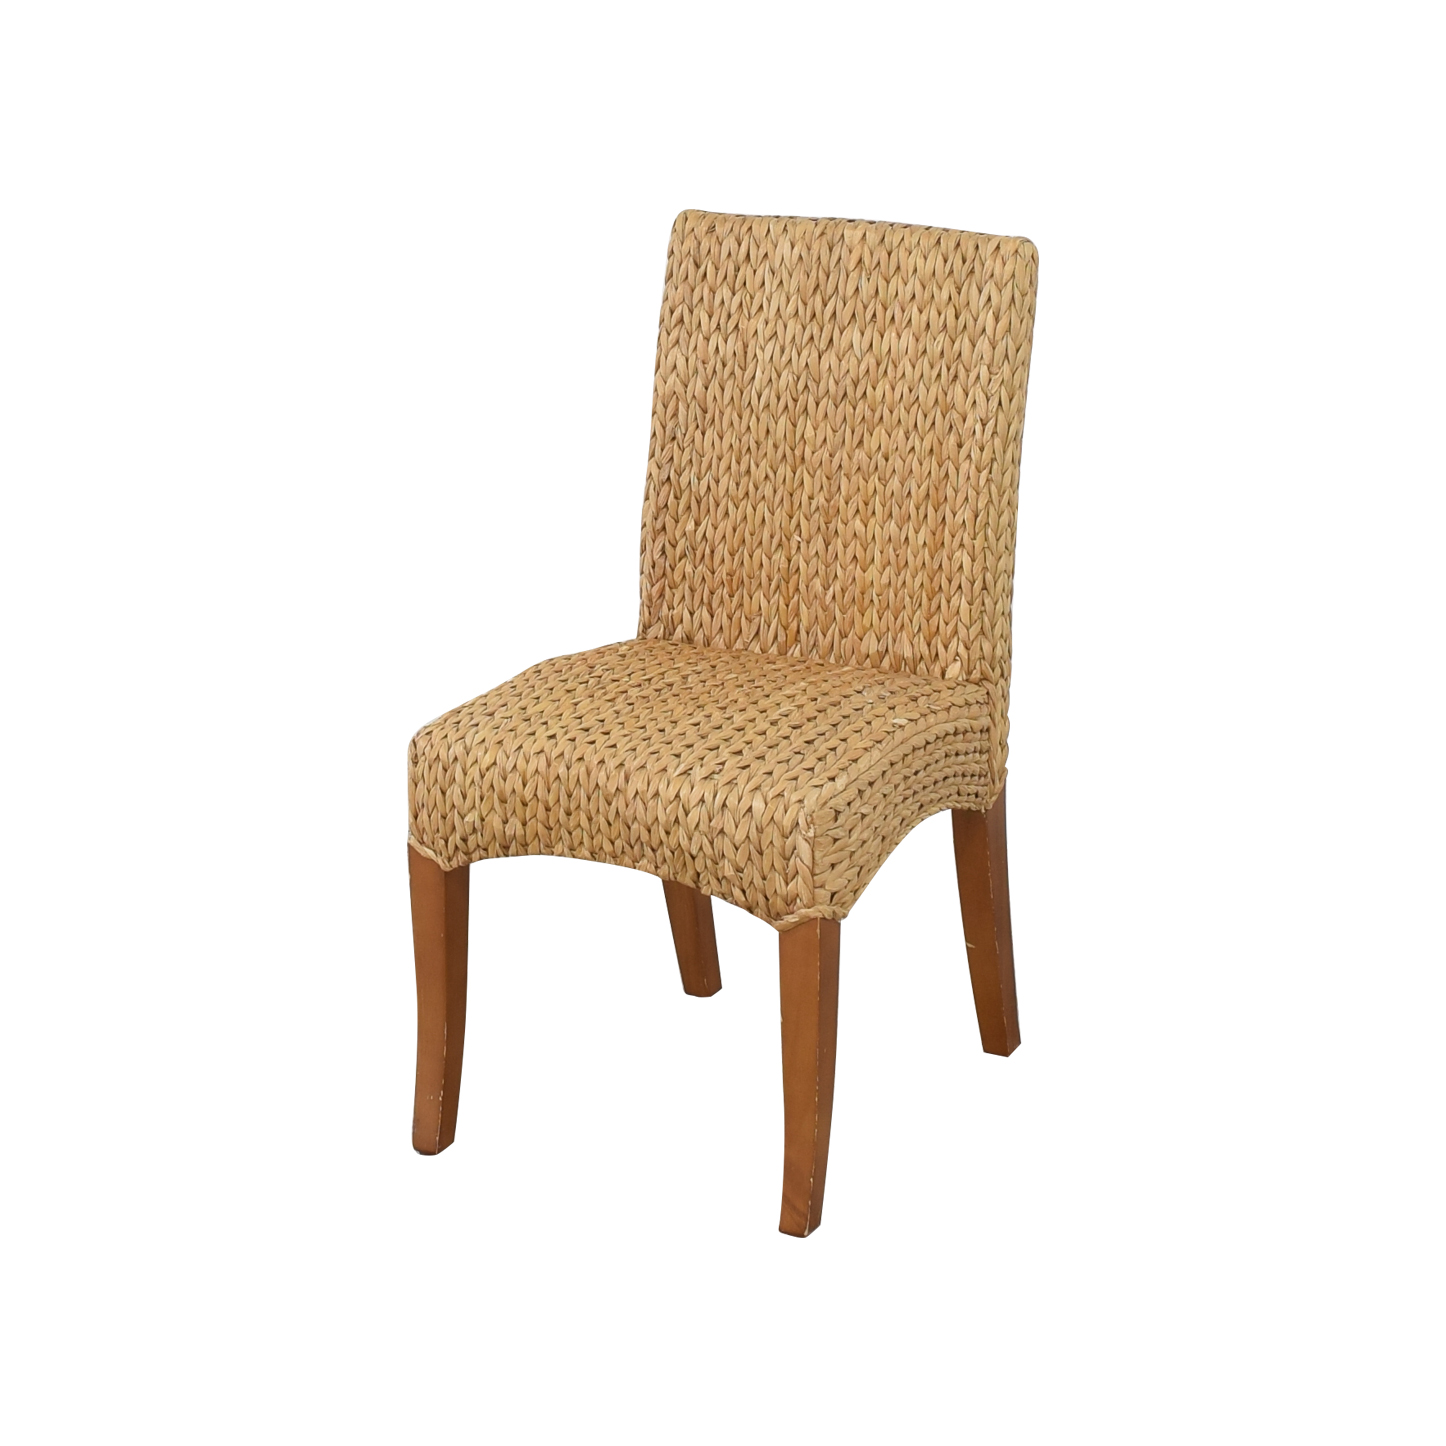 Pottery Barn Pottery Barn Seagrass Dining Side Chairs for sale